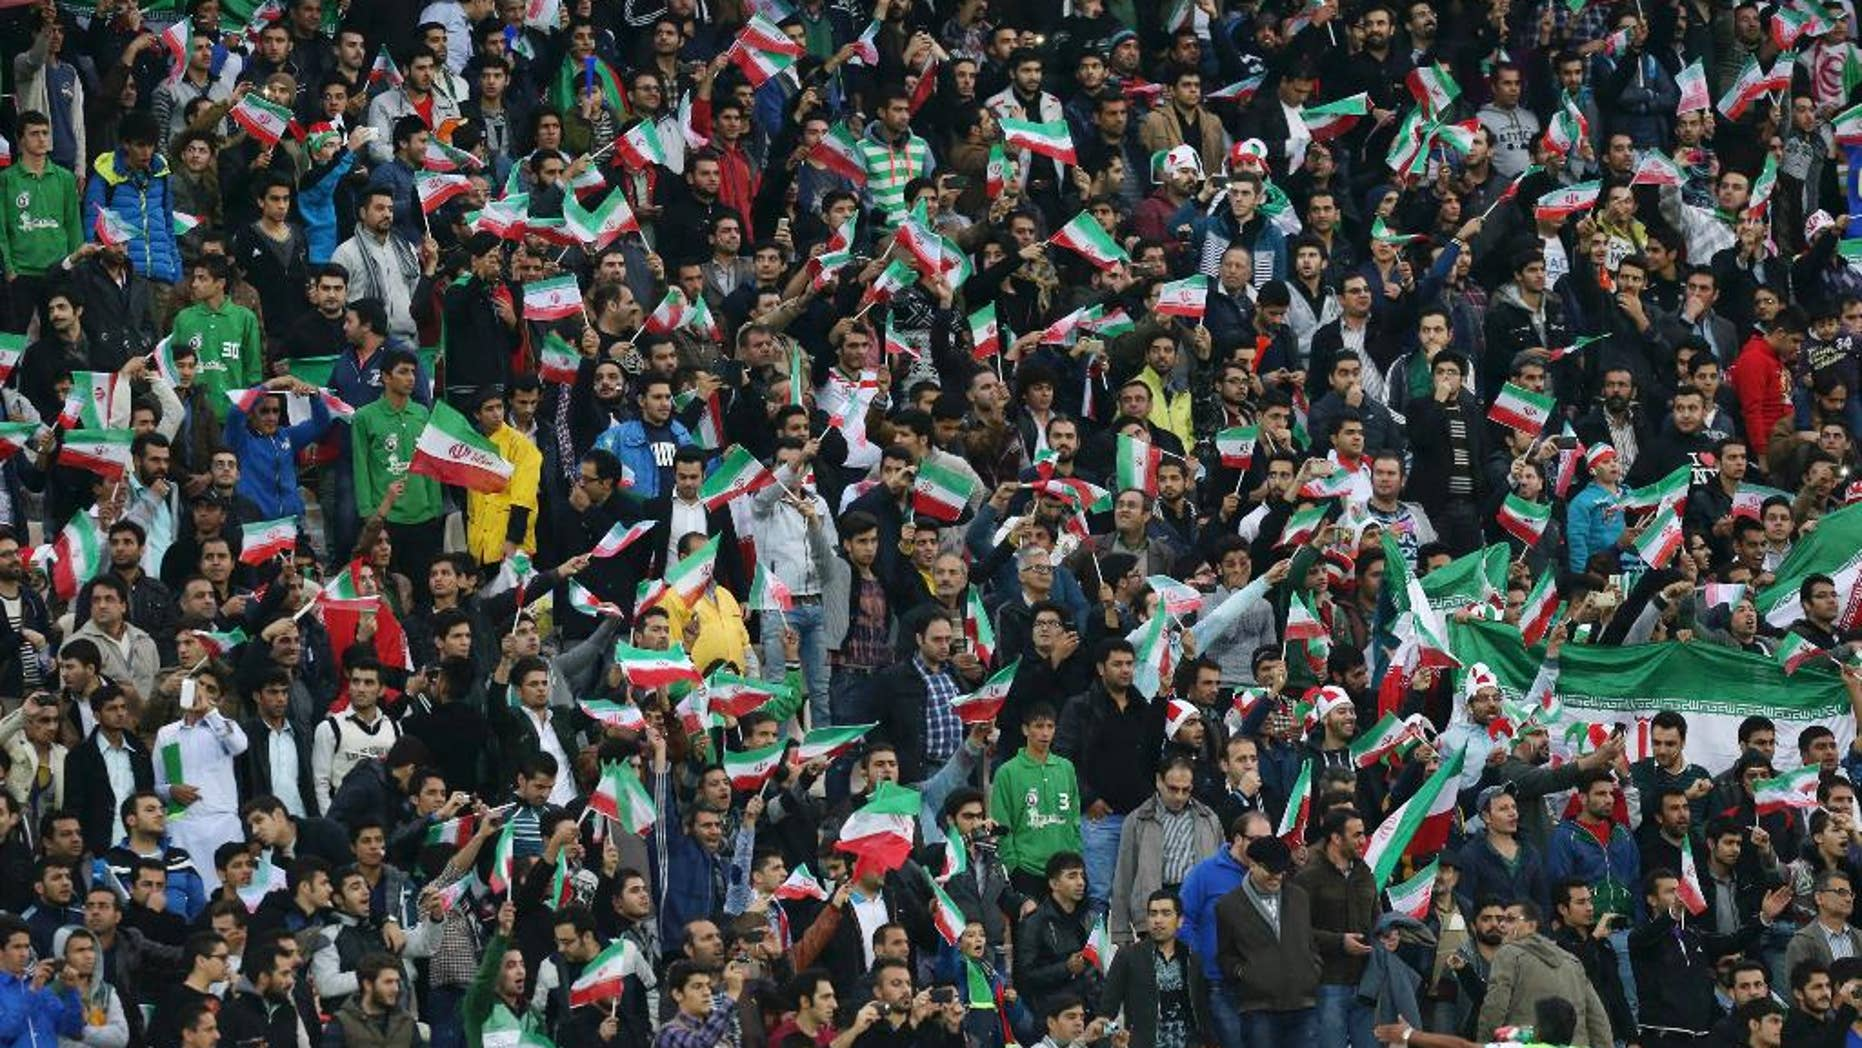 """FILE - In this Nov. 18, 2014 file photo, Iranian soccer supporters wave their country's flag while following a friendly match between Iran and South Korea at the Azadi, (freedom) stadium in Tehran, Iran. Iranian authorities have partially lifted a ban on women attending men's sports matches, a senior sports official said Saturday, April 4, 2015. The announcement comes after FIFA President Sepp Blatter urged Iran last month to end the """"intolerable"""" ban on women watching football in stadiums. (AP Photo/Vahid Salemi, File)"""